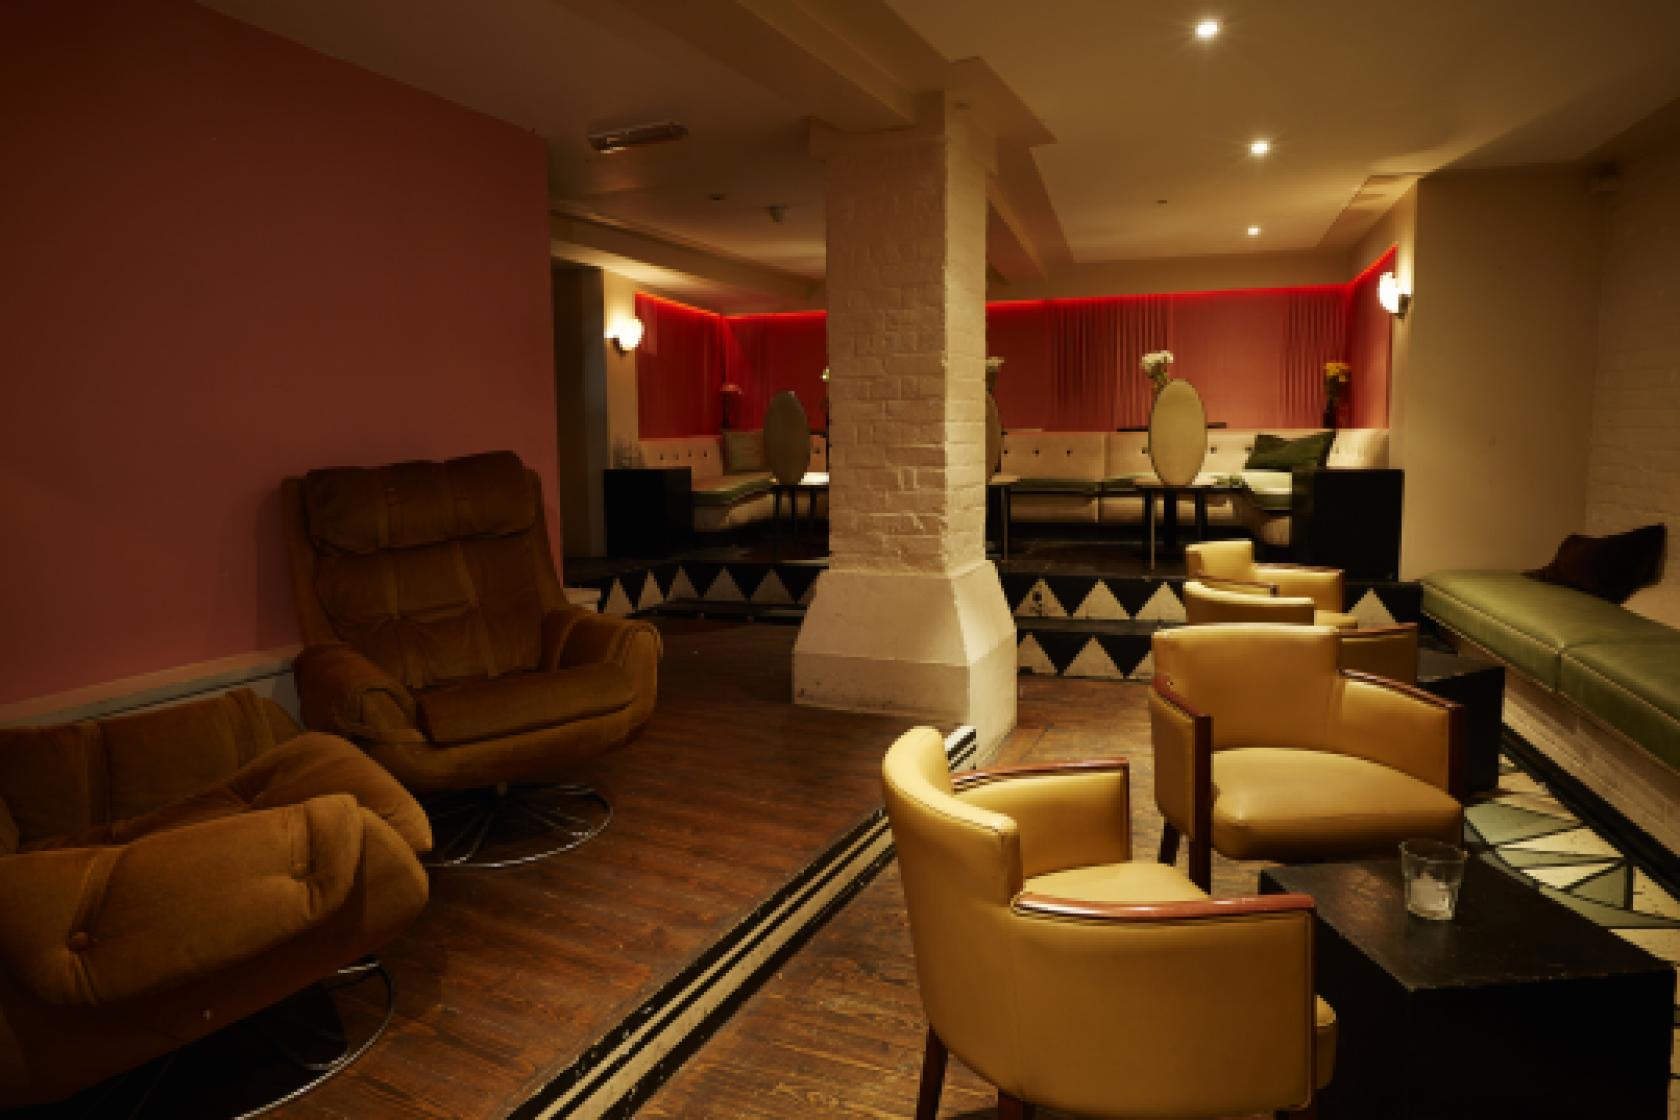 Deco lounge at big chill house private hire - Deco lounge hout ...